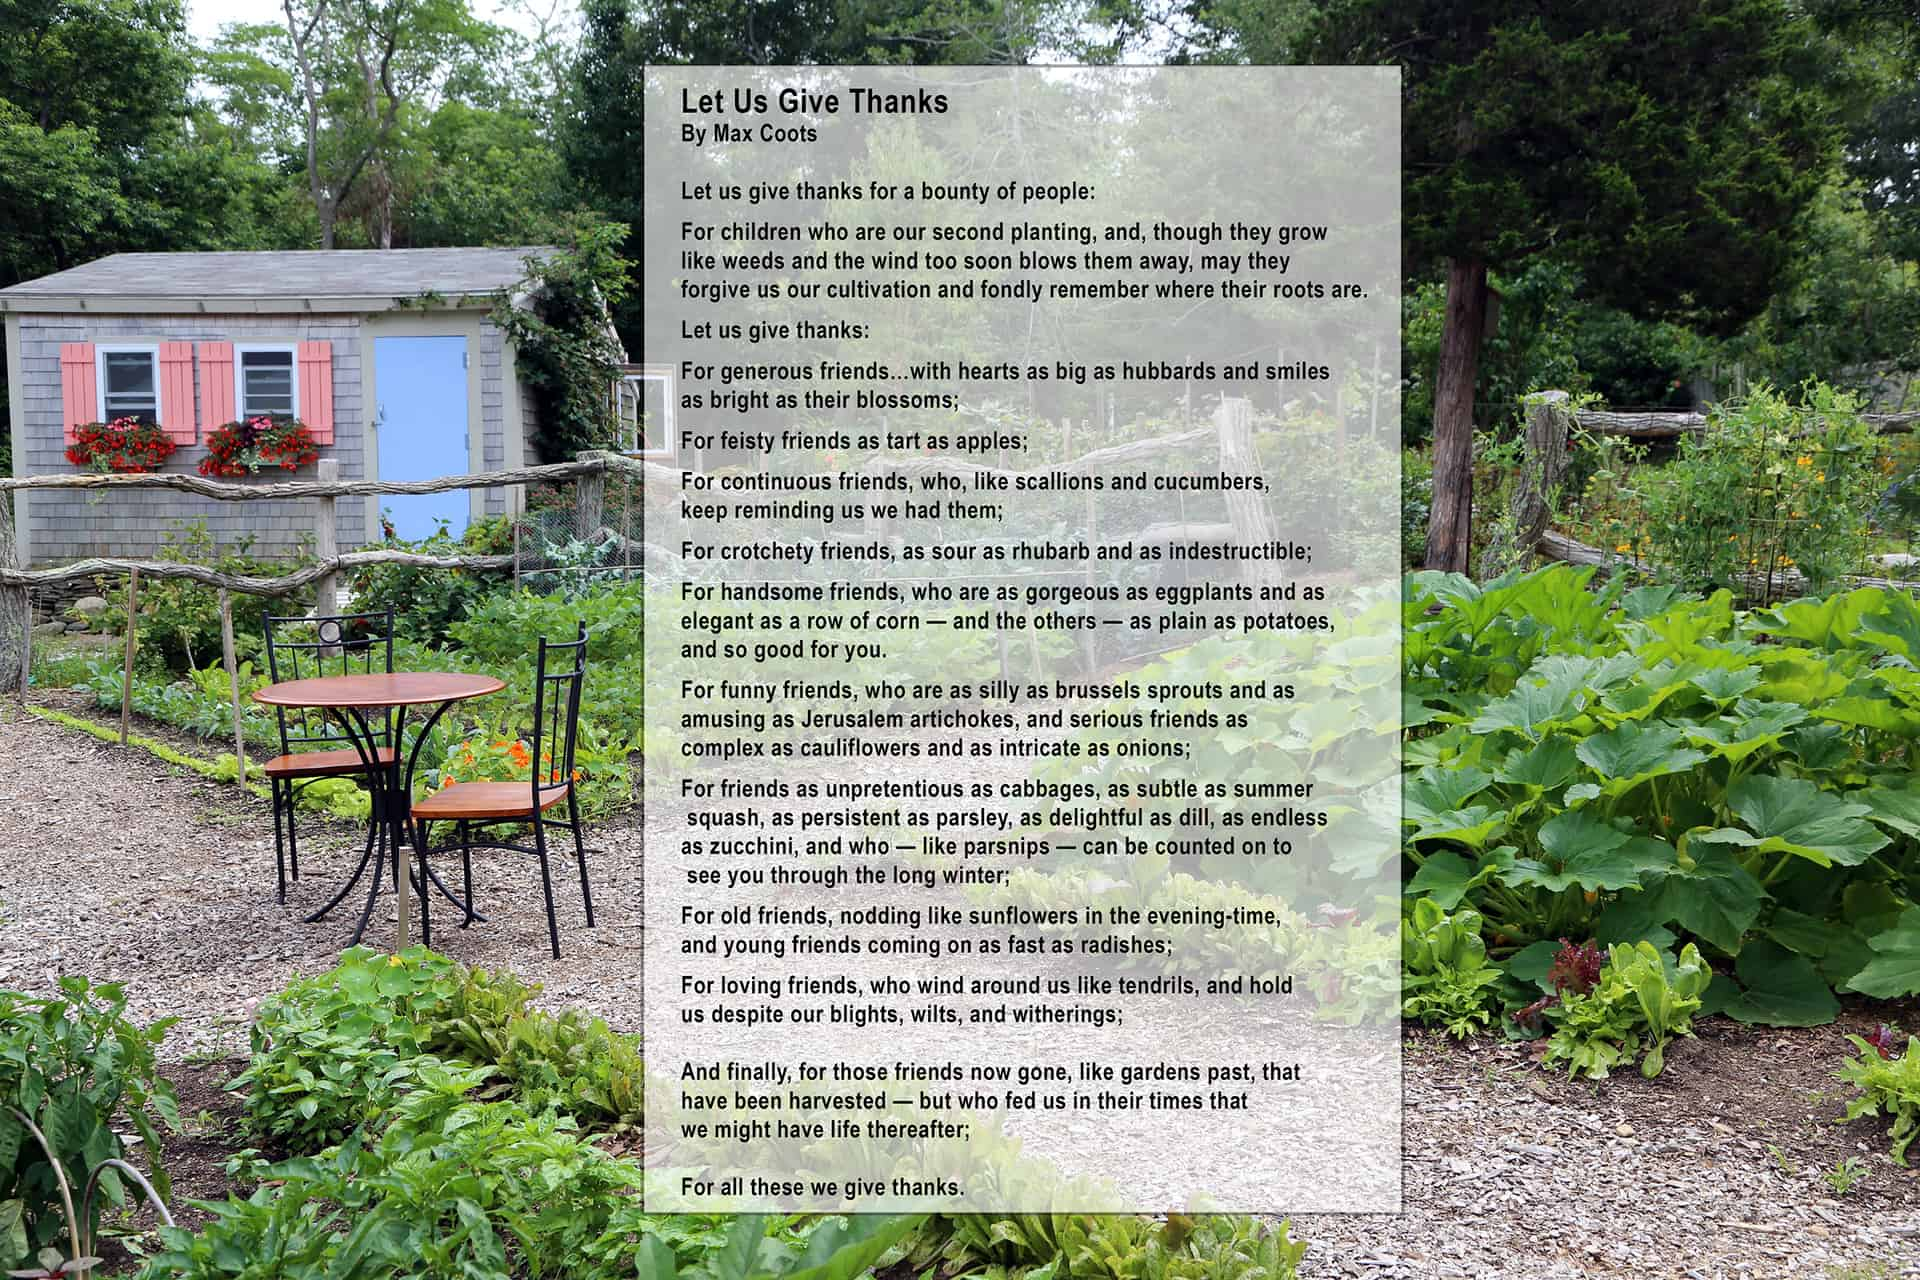 Thanks to my friend Karen for reminding me about this poem.